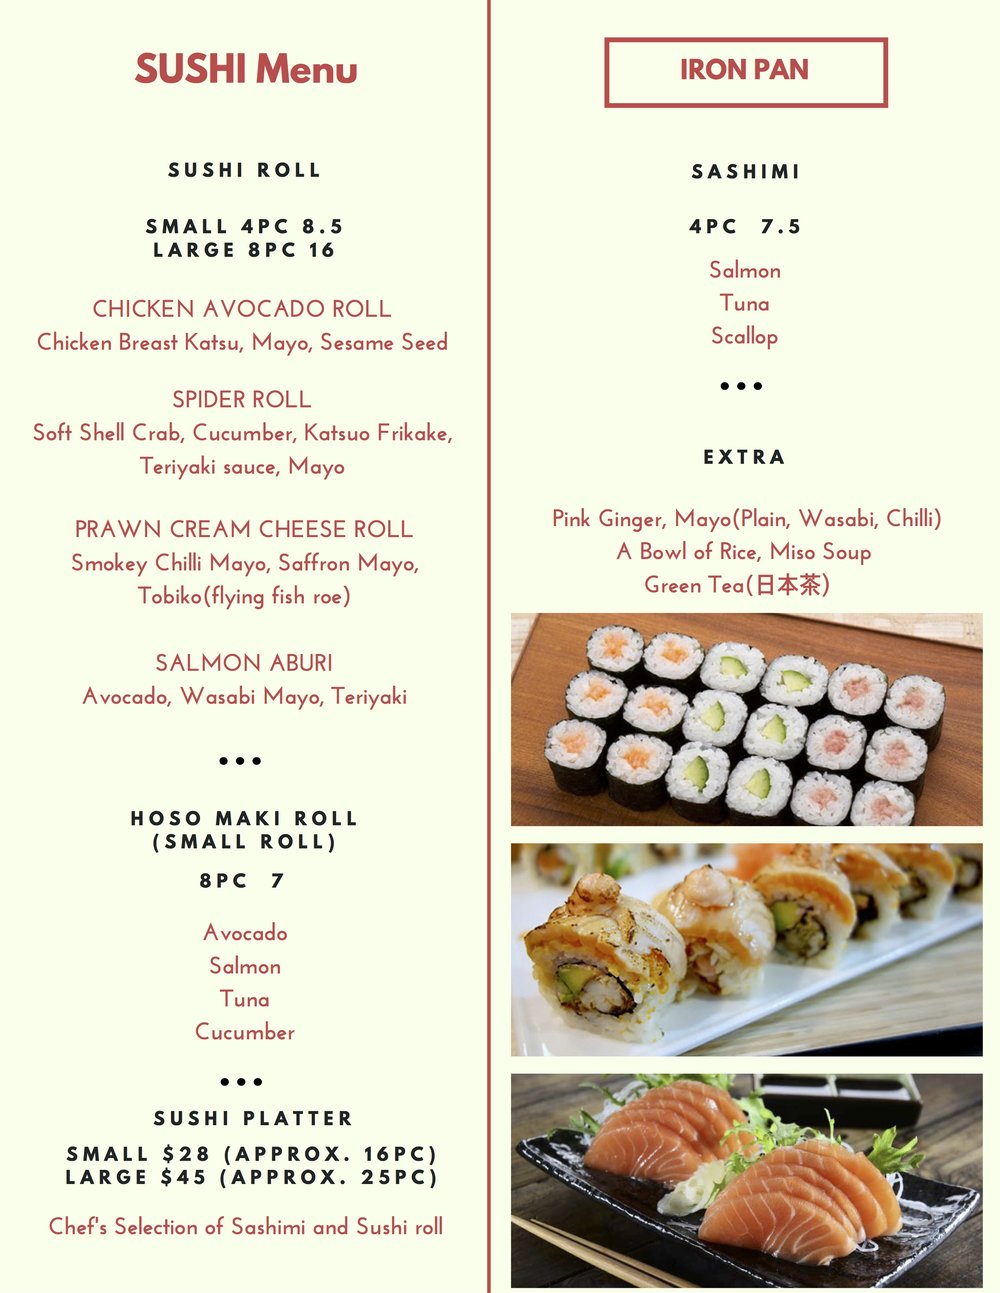 SUSHI MENU ONLY AVAILABLE FOR DINNER